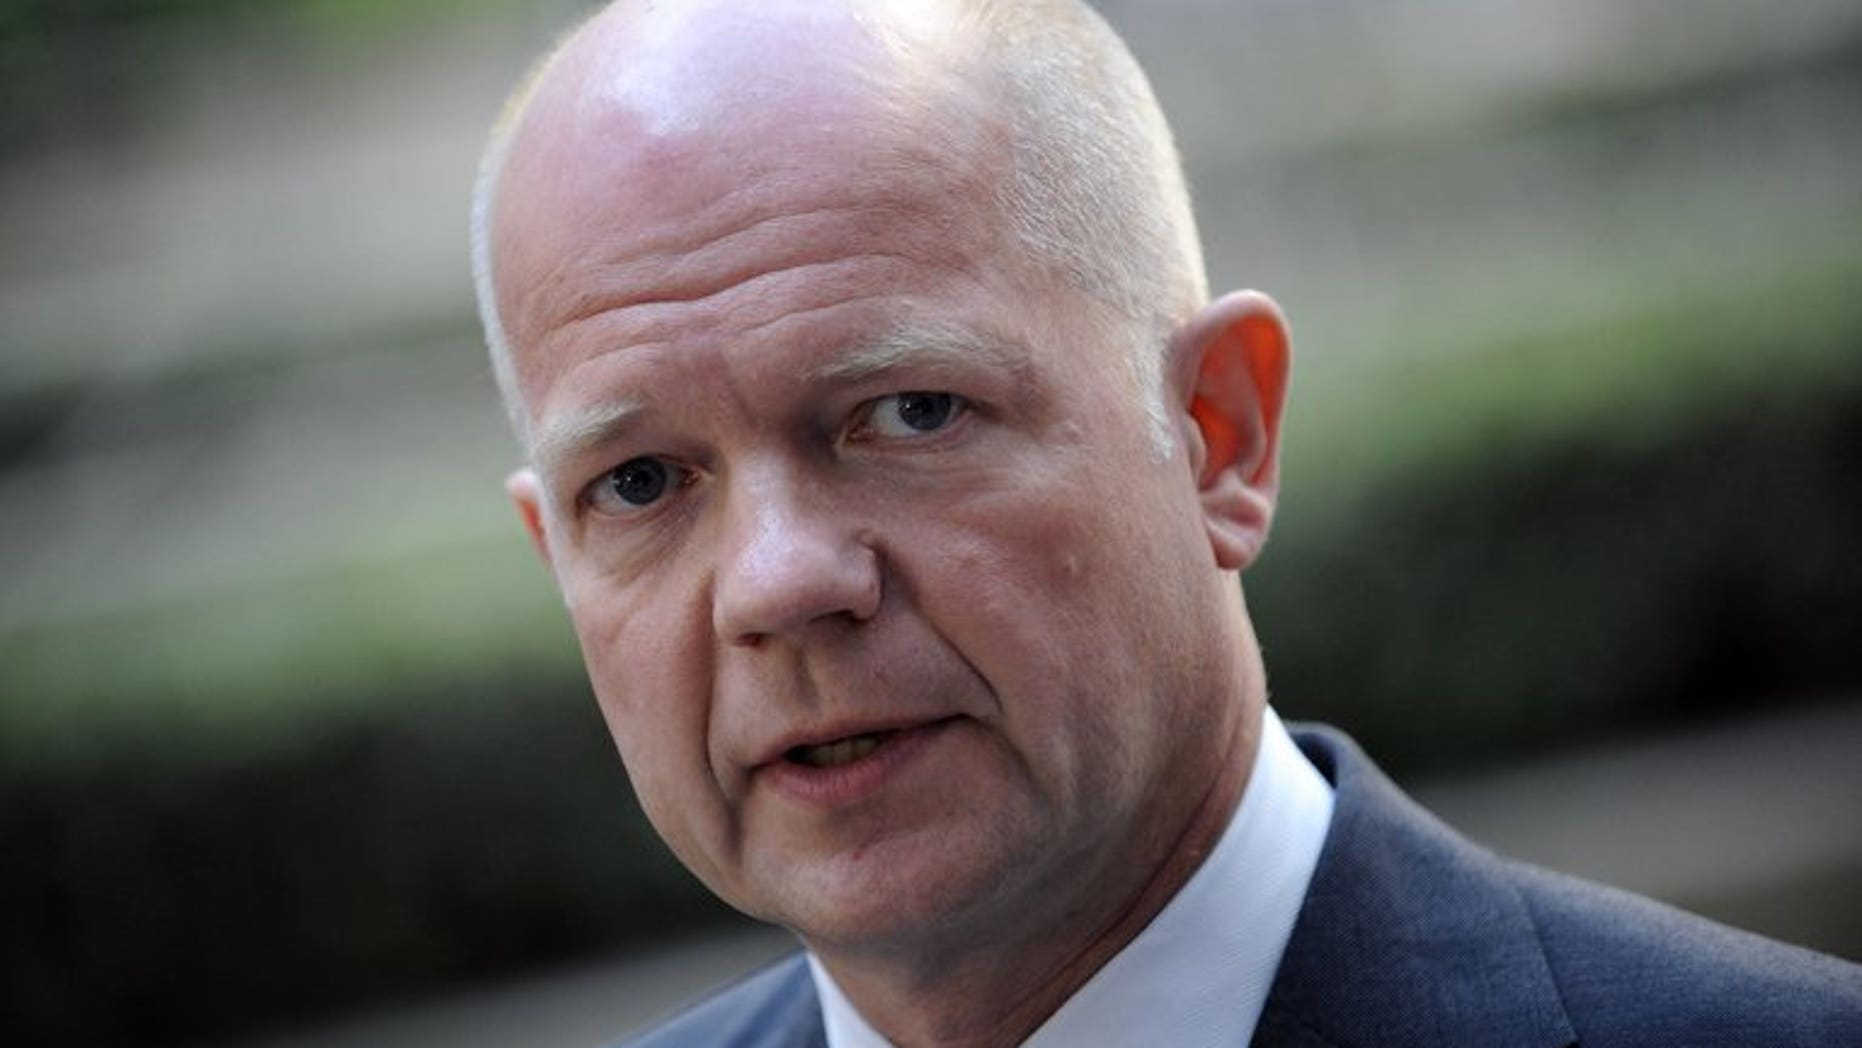 """Britain's Foreign Secretary William Hague answers journalists' questions on July 22, 2013 at the EU Headquarters in Brussels. Hague said Wednesday that he hoped the alleged chemical weapons attack in Syria would """"wake up"""" President Bashar al-Assad's supporters to the nature of his regime."""